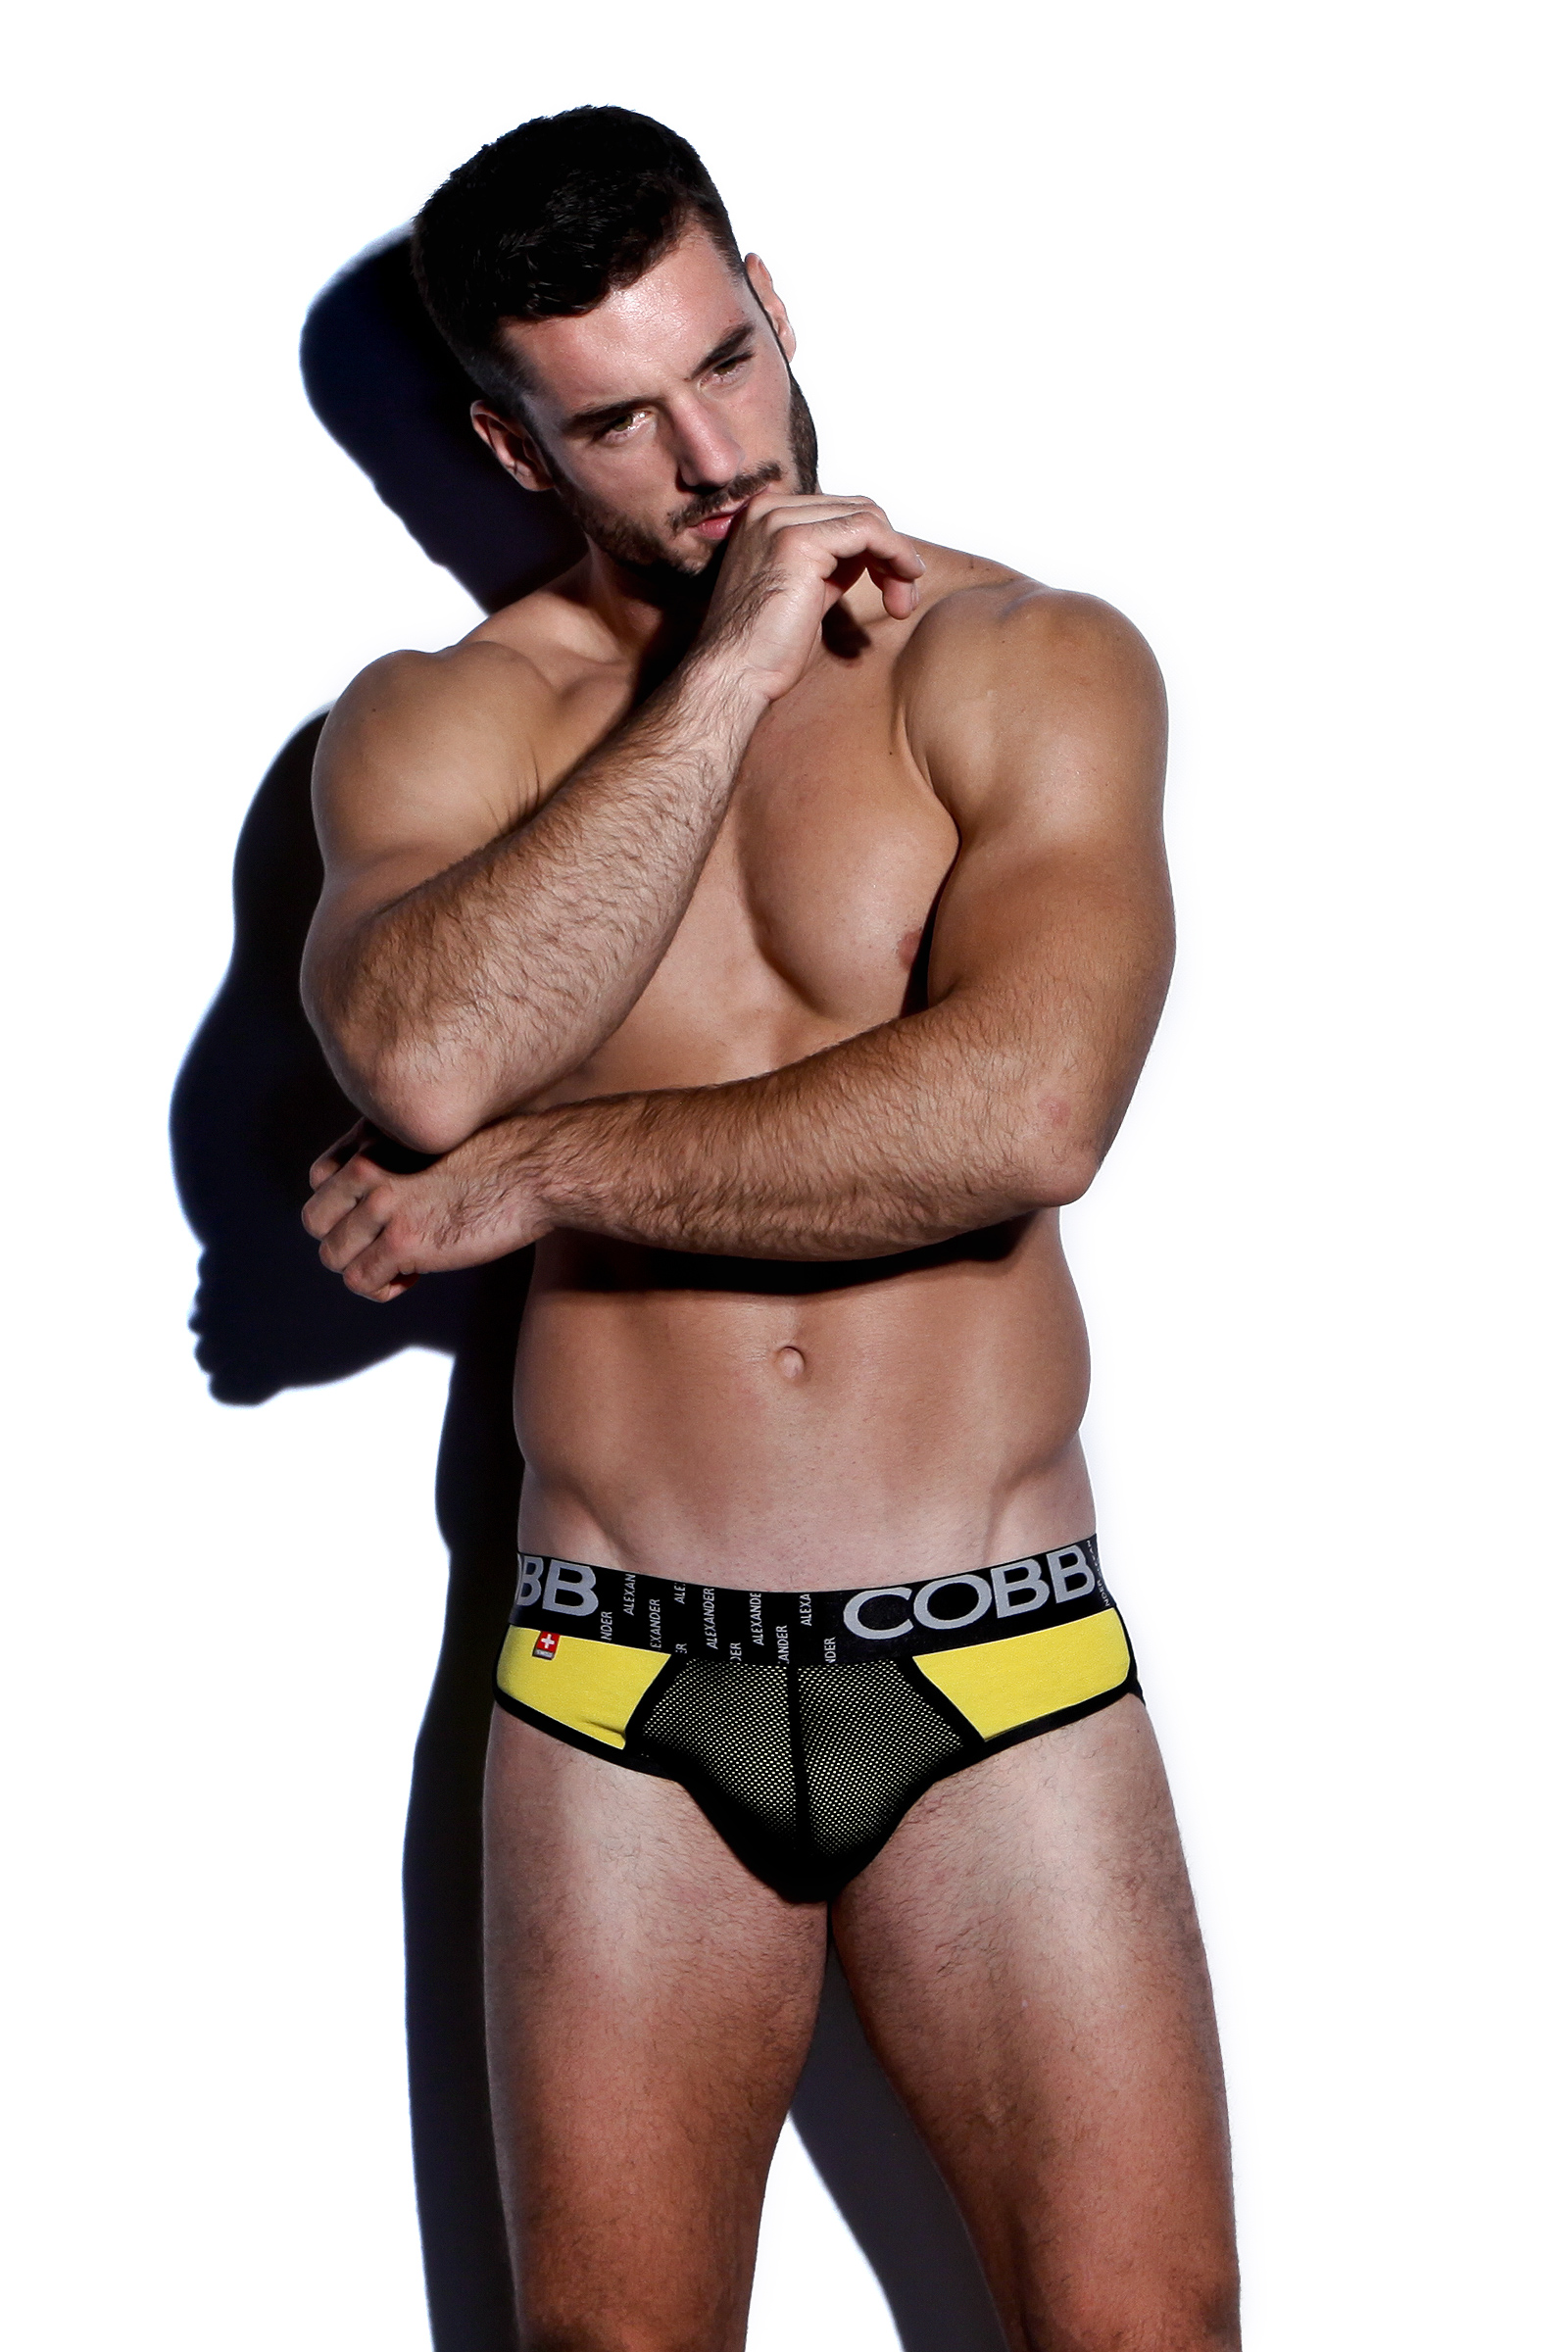 ALEXANDER COBB JEALOUS SLIP BRIEF